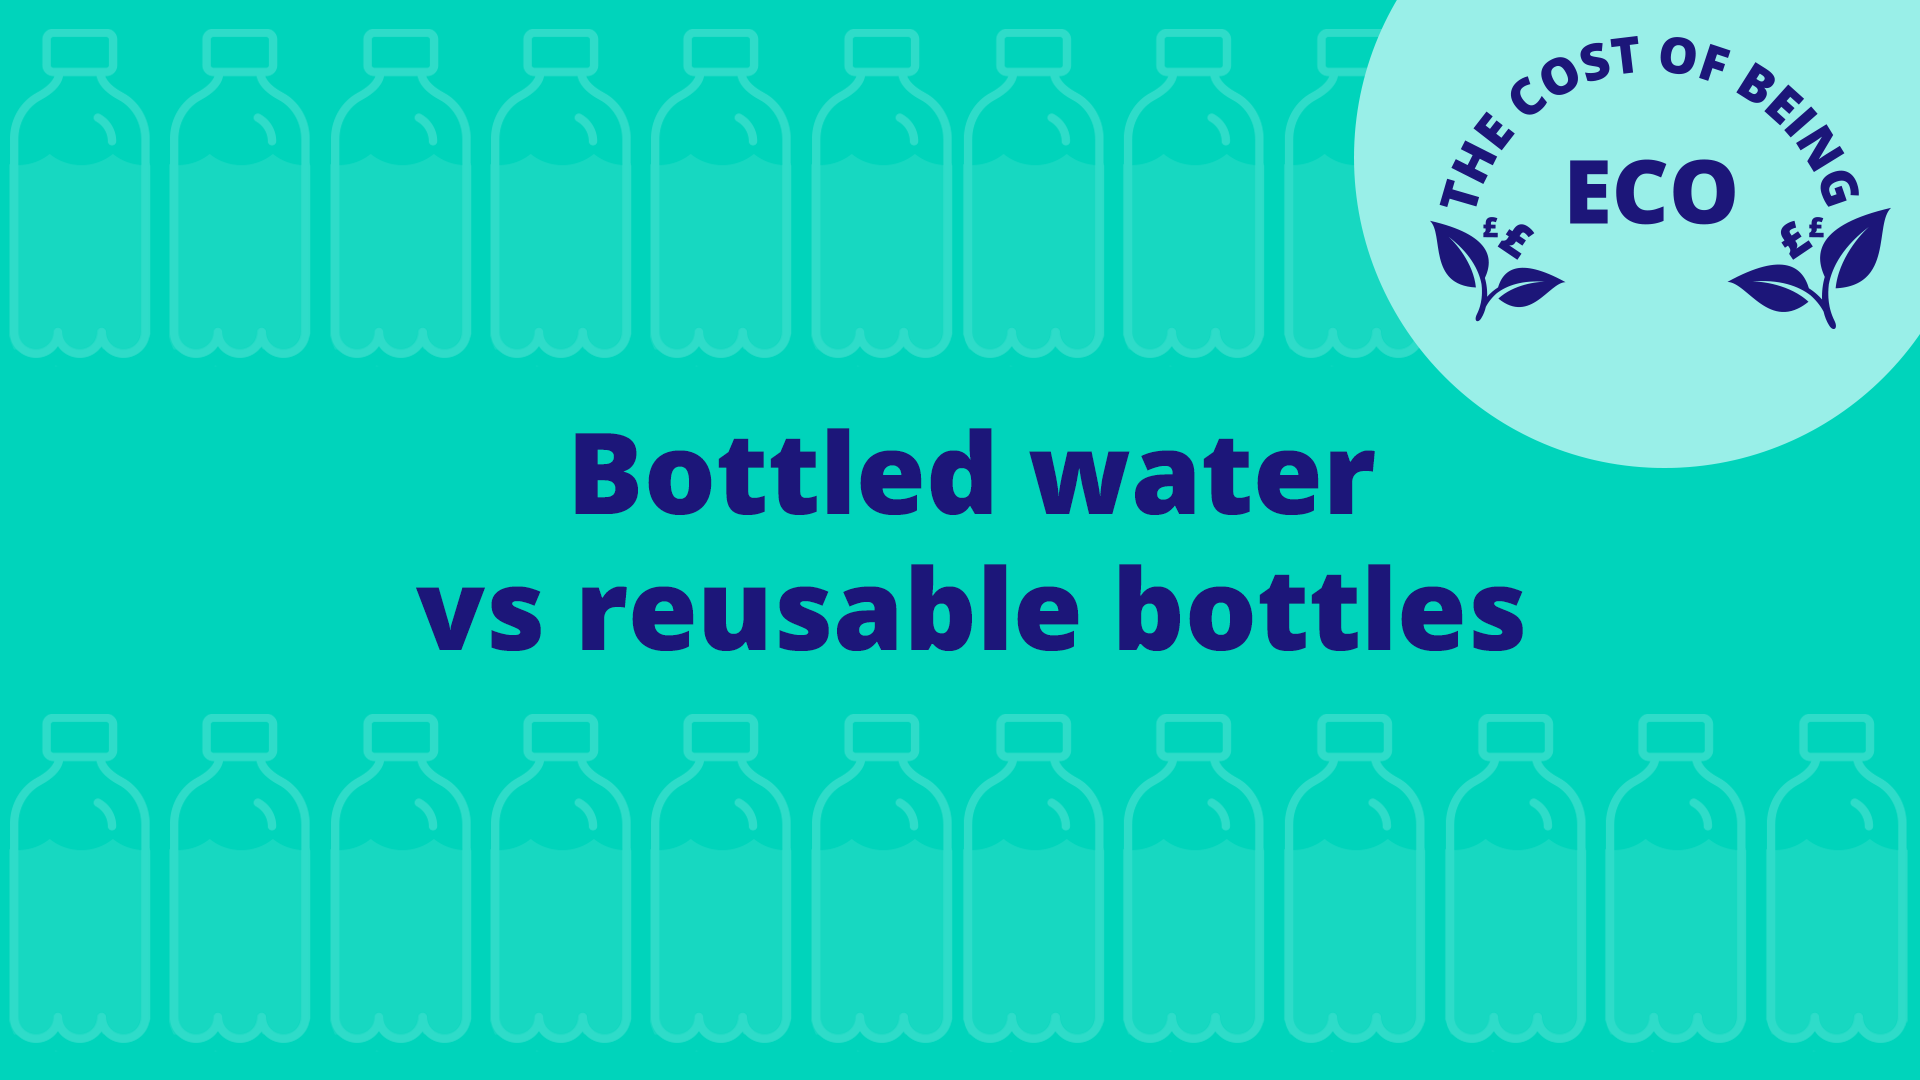 the-cost-of-being-eco-bottled-water-vs-reusable-bottles